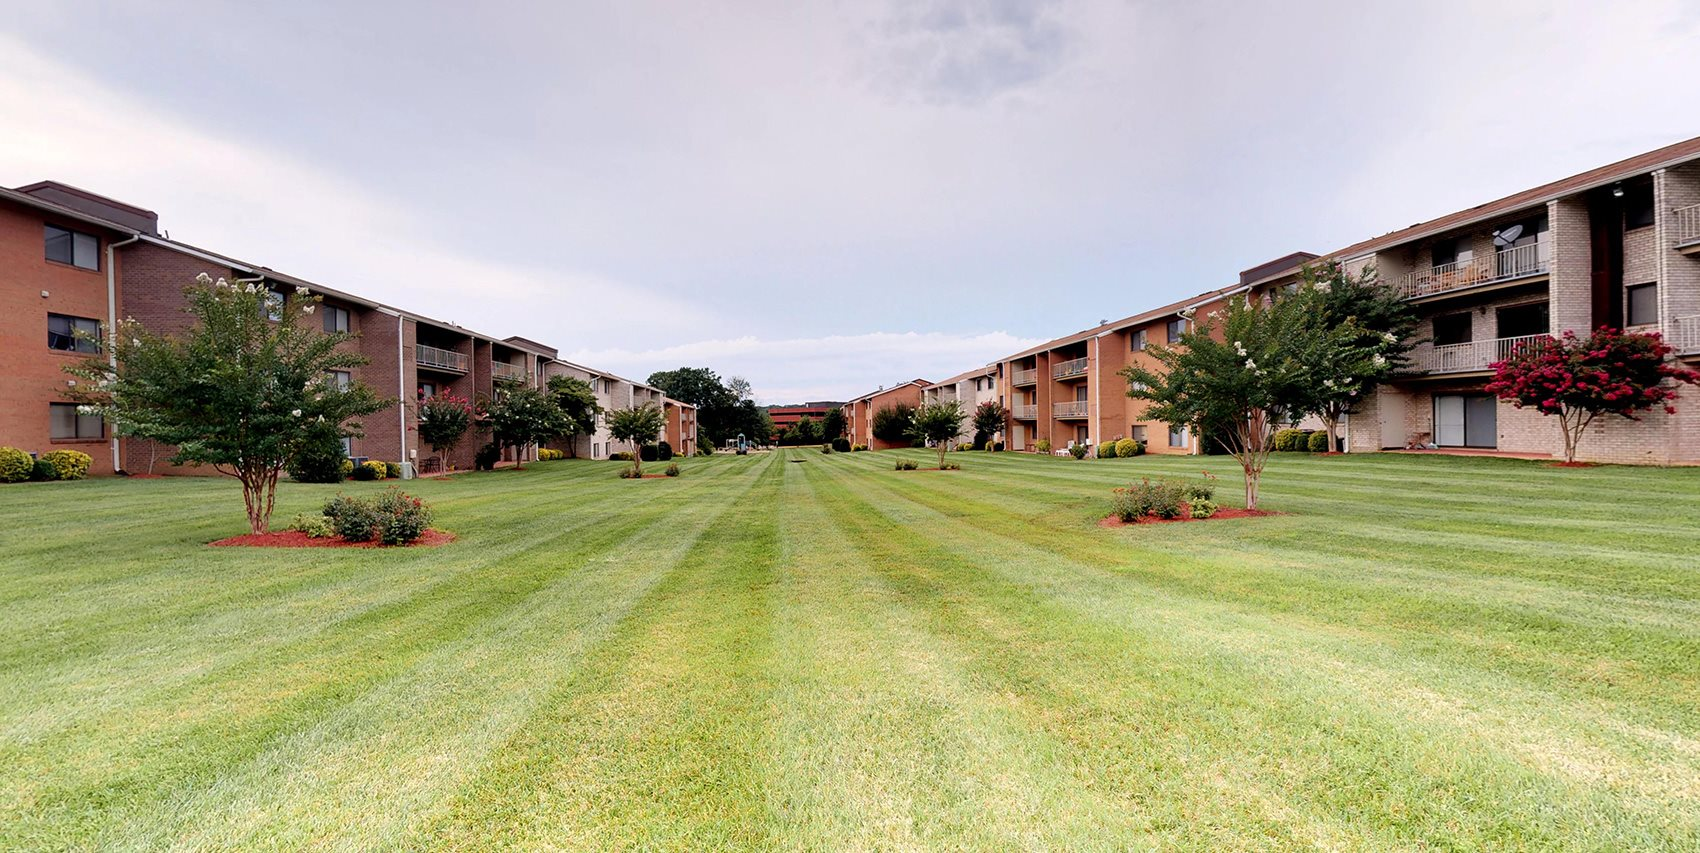 large outdoor grass area with exterior view of the apartments